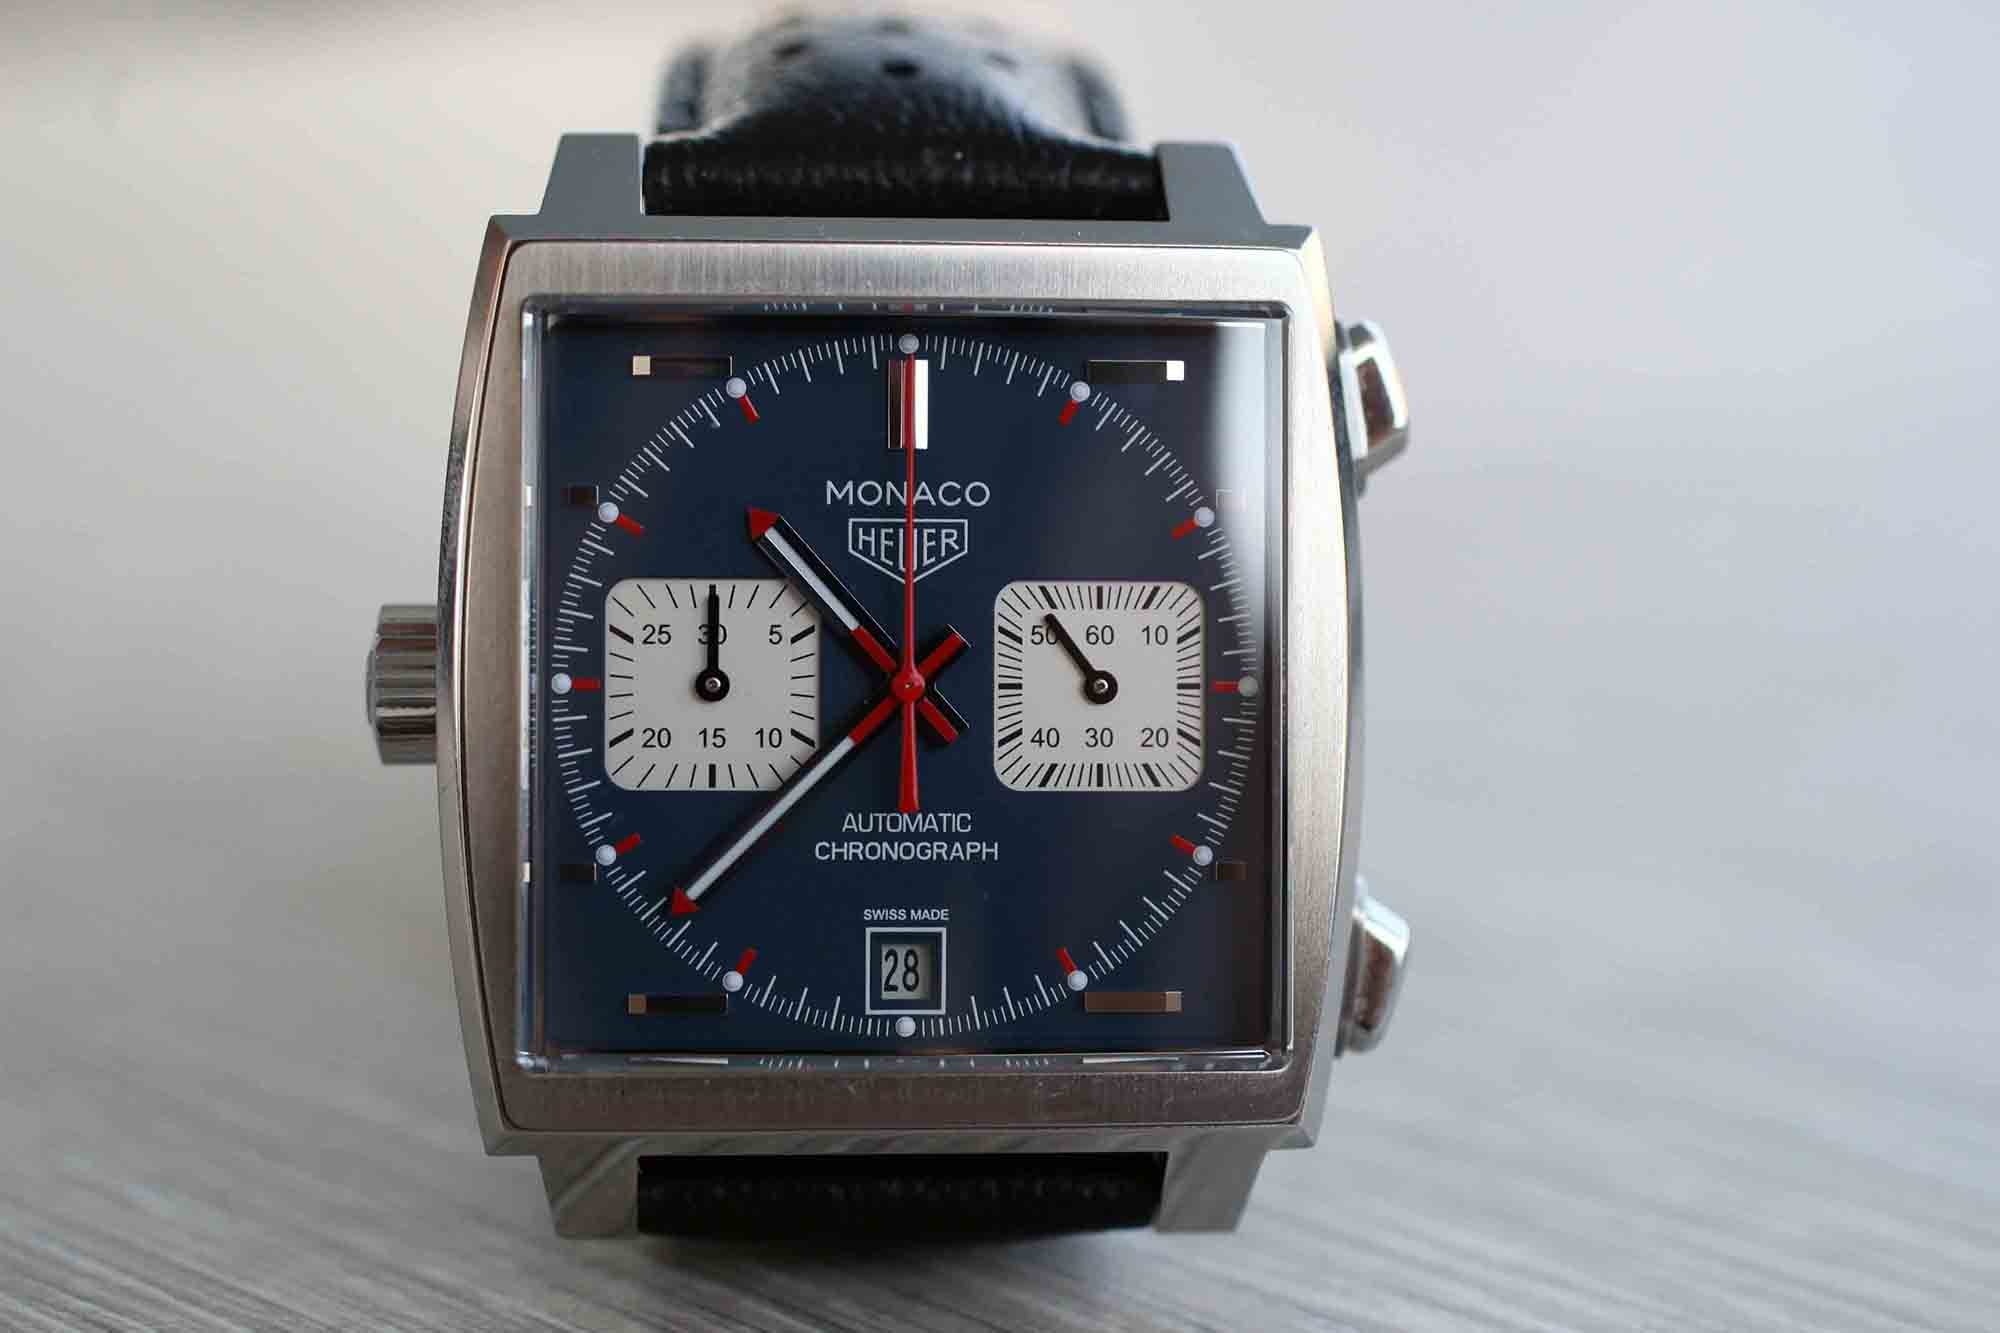 The TAG Heuer Monaco Calibre 11 'McQueen' Chronograph. Photo Report: Behind The Scenes At The Monaco Grand Prix 2016 With TAG Heuer CEO Jean-Claude Biver Photo Report: Behind The Scenes At The Monaco Grand Prix 2016 With TAG Heuer CEO Jean-Claude Biver q